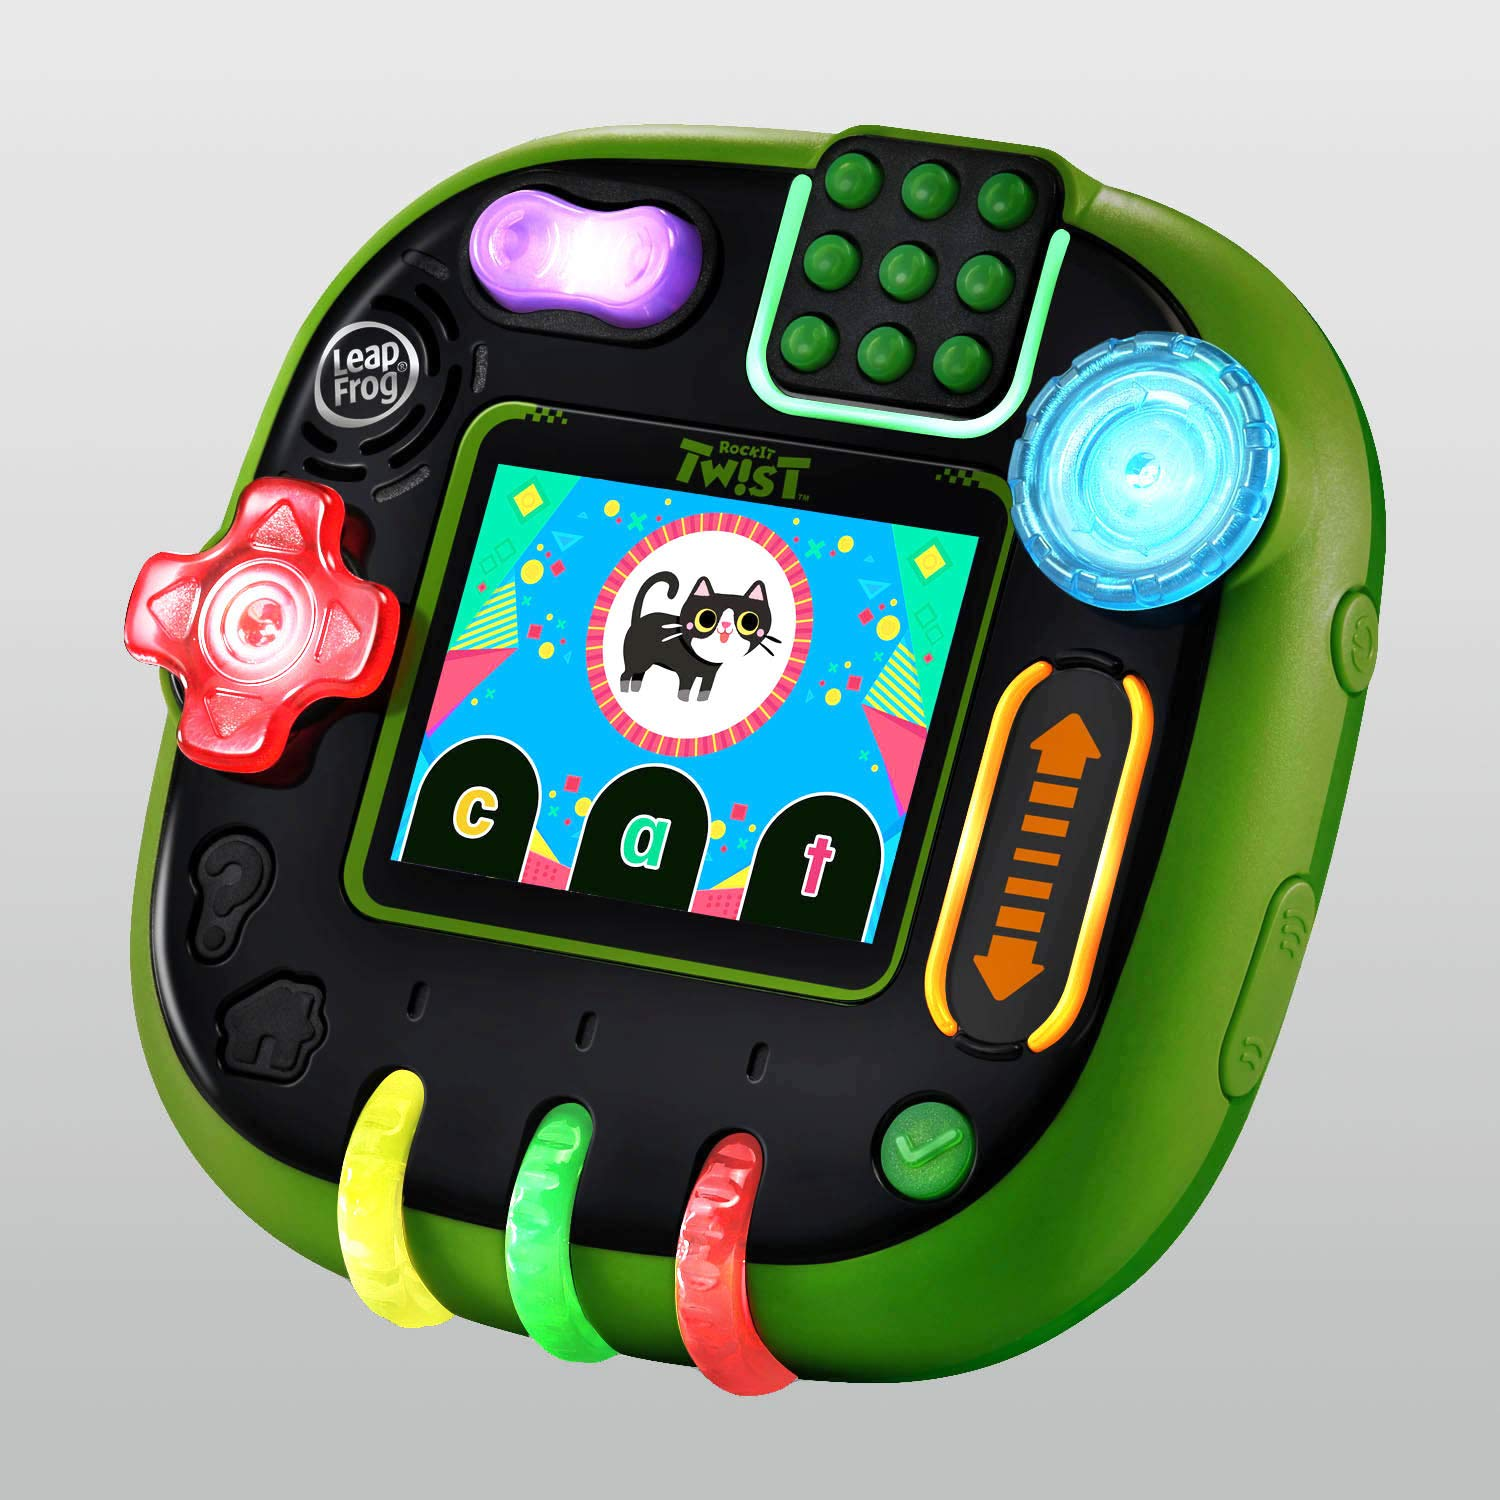 LeapFrog RockIt Twist Handheld Learning Game System, Green - wiihuu